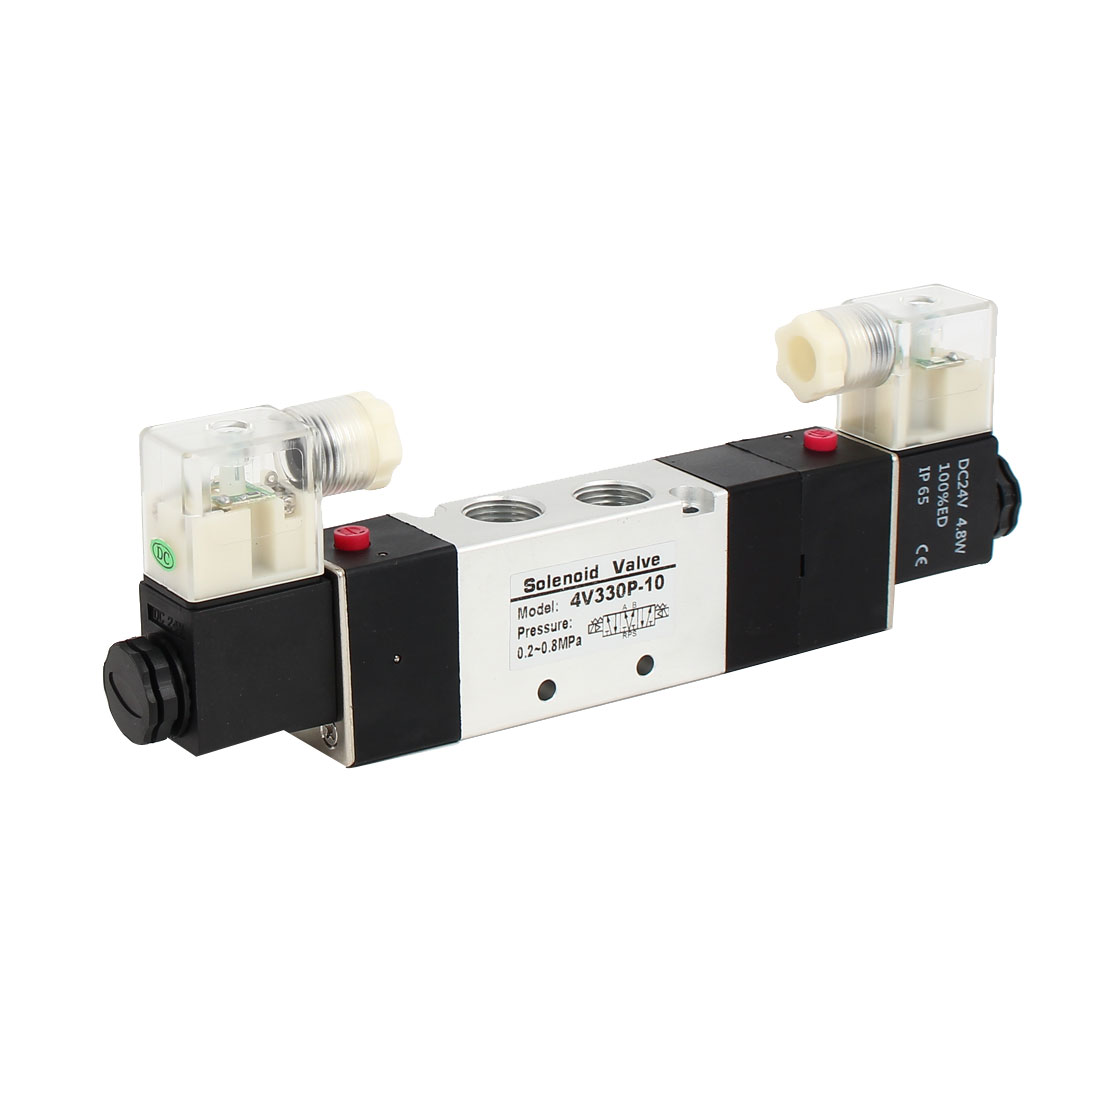 DC 24V 3 Position 5 Way Double Head Pneumatic Solenoid Air Valve 4V330P-10